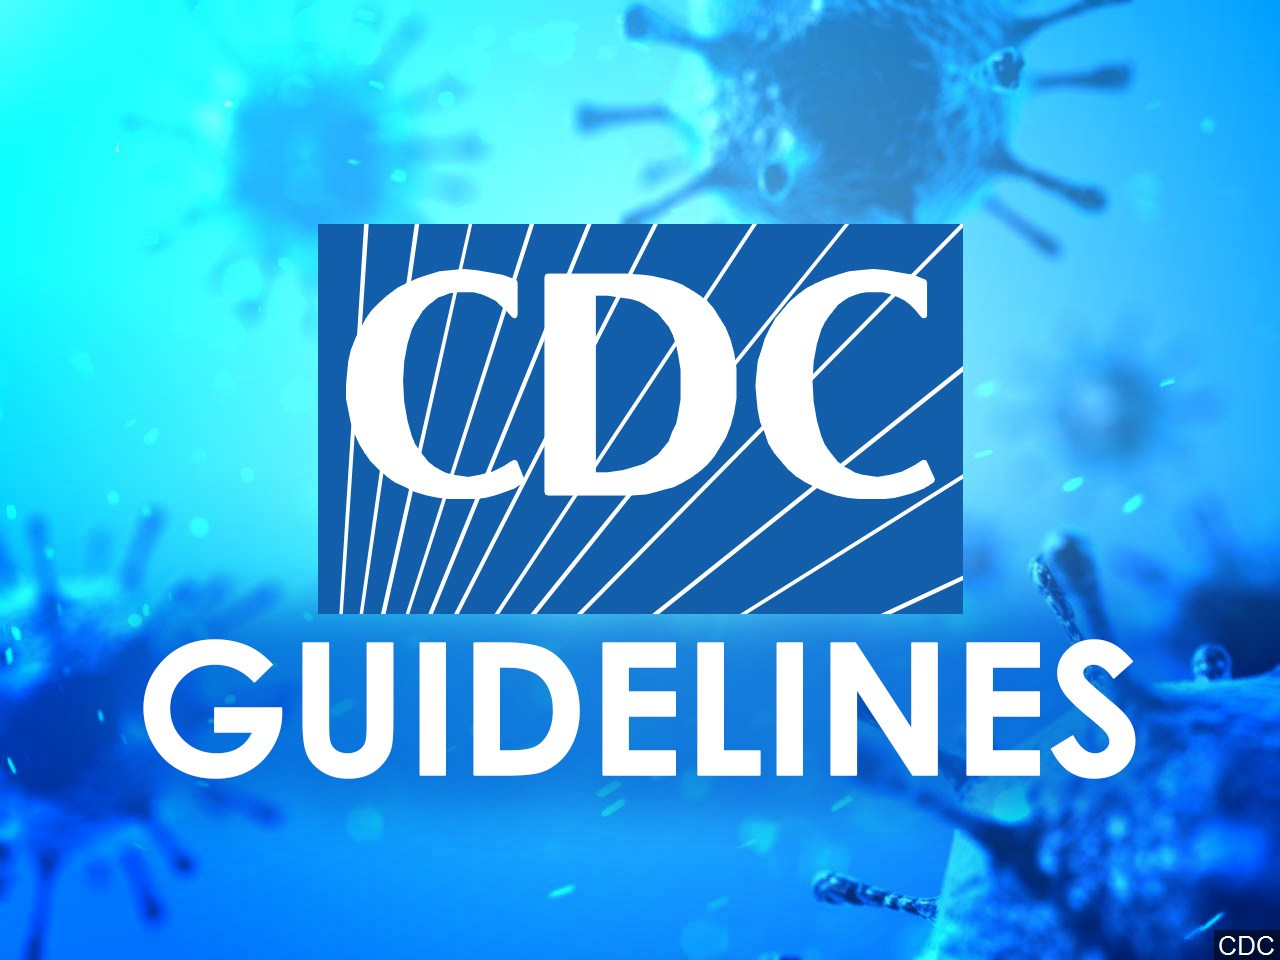 CDC Guidelines WILL be enforced.